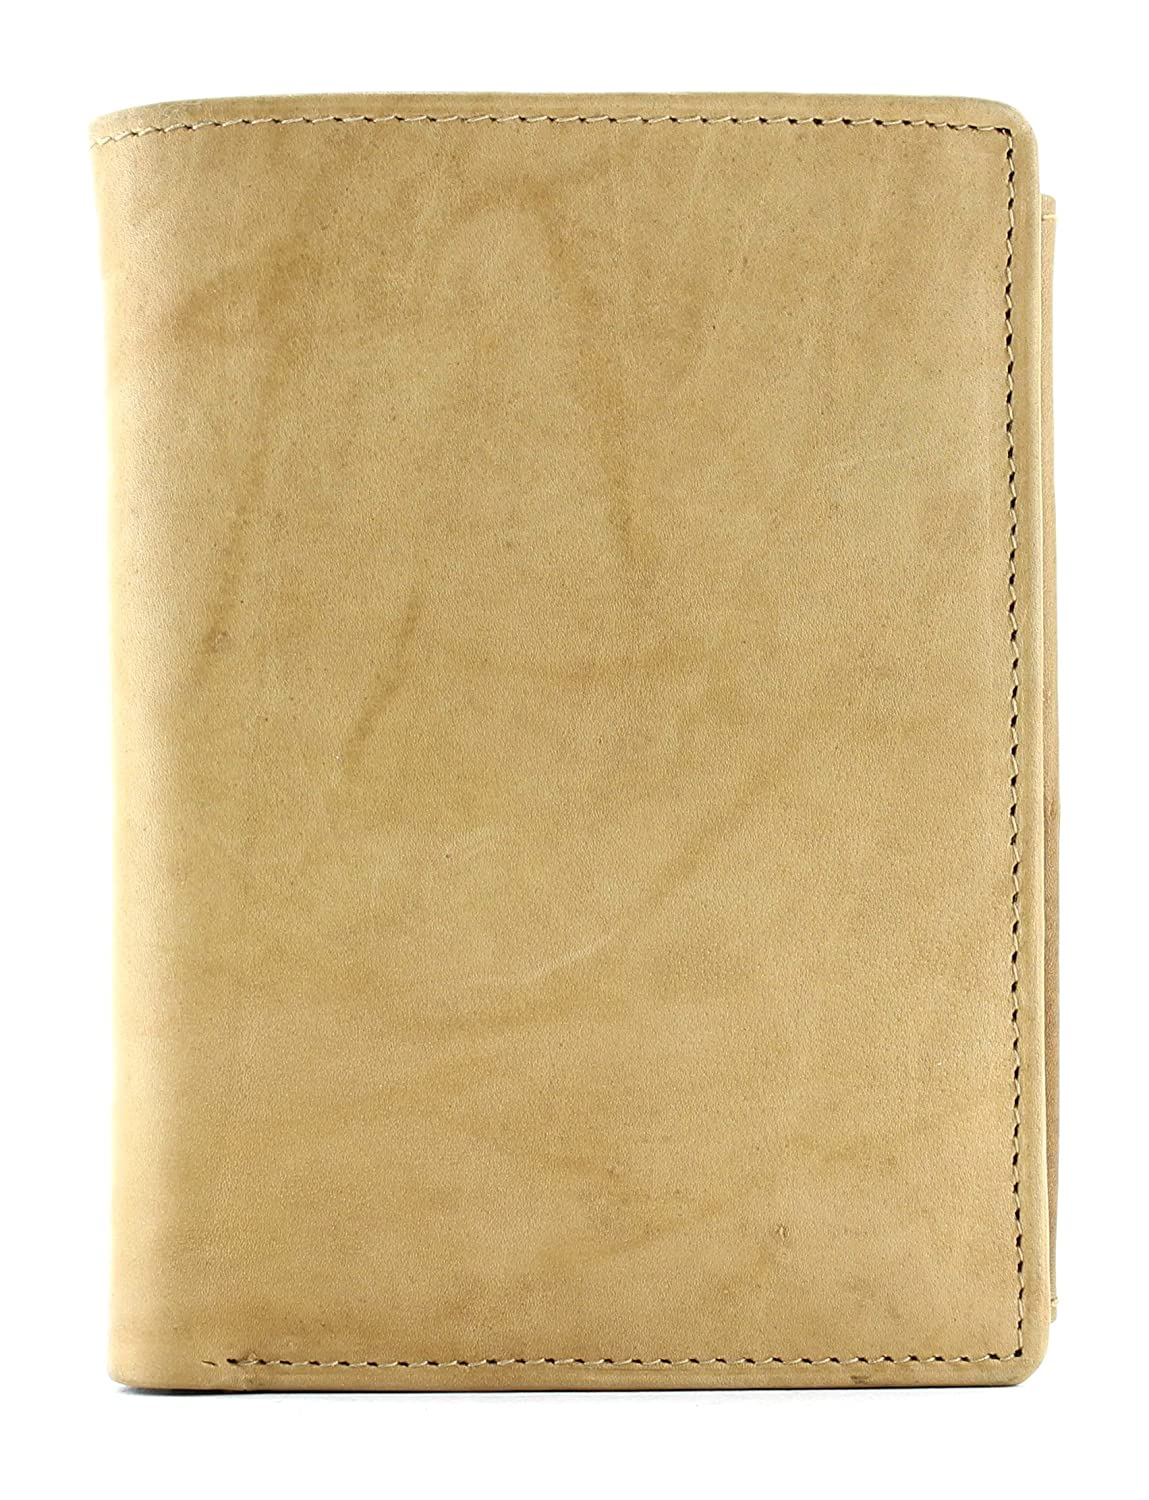 Bacci Top Grain Cowhide Deluxe Hipster With Coin Pocket Tan